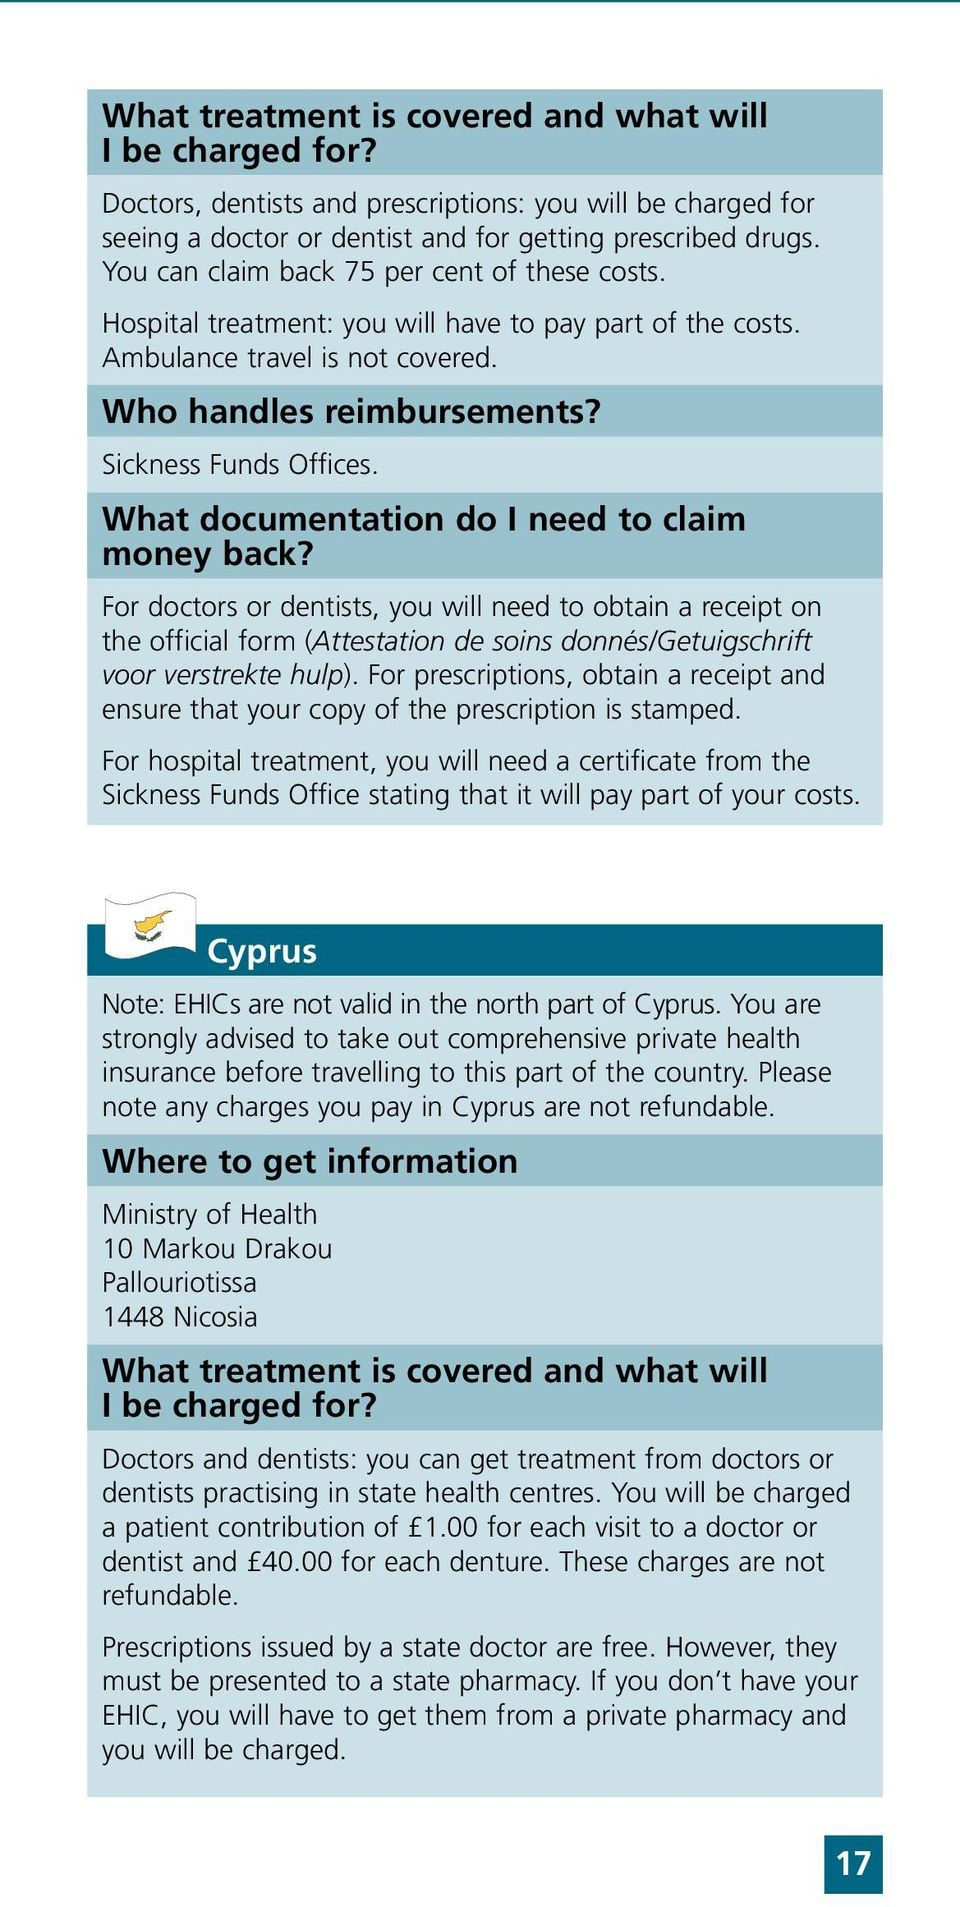 What documentation do I need to claim money back? For doctors or dentists, you will need to obtain a receipt on the official form (Attestation de soins donnés/getuigschrift voor verstrekte hulp).